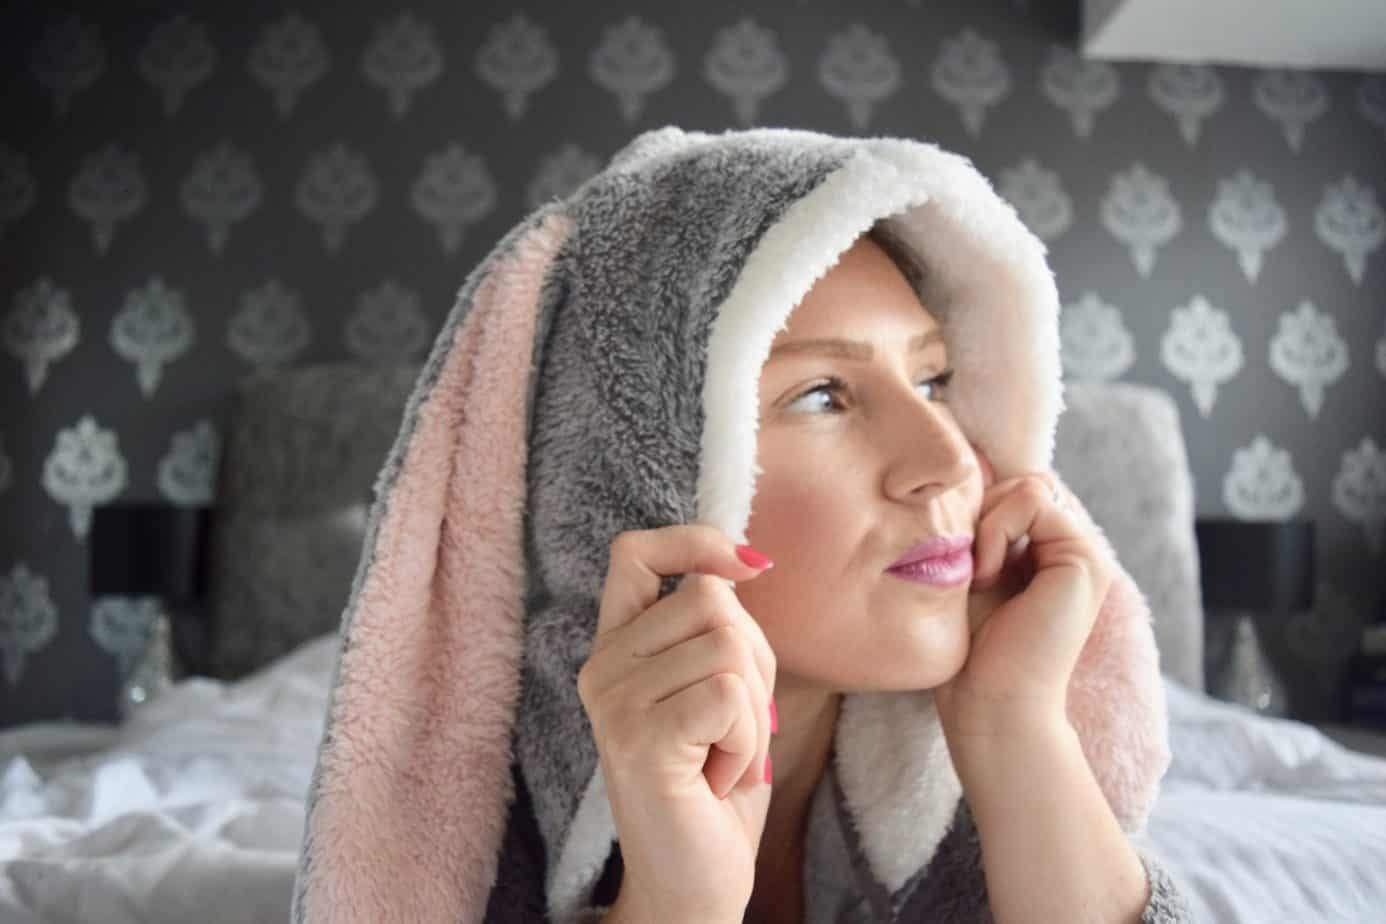 A close up of me with the hood up of the onesie made by Hunkemoller